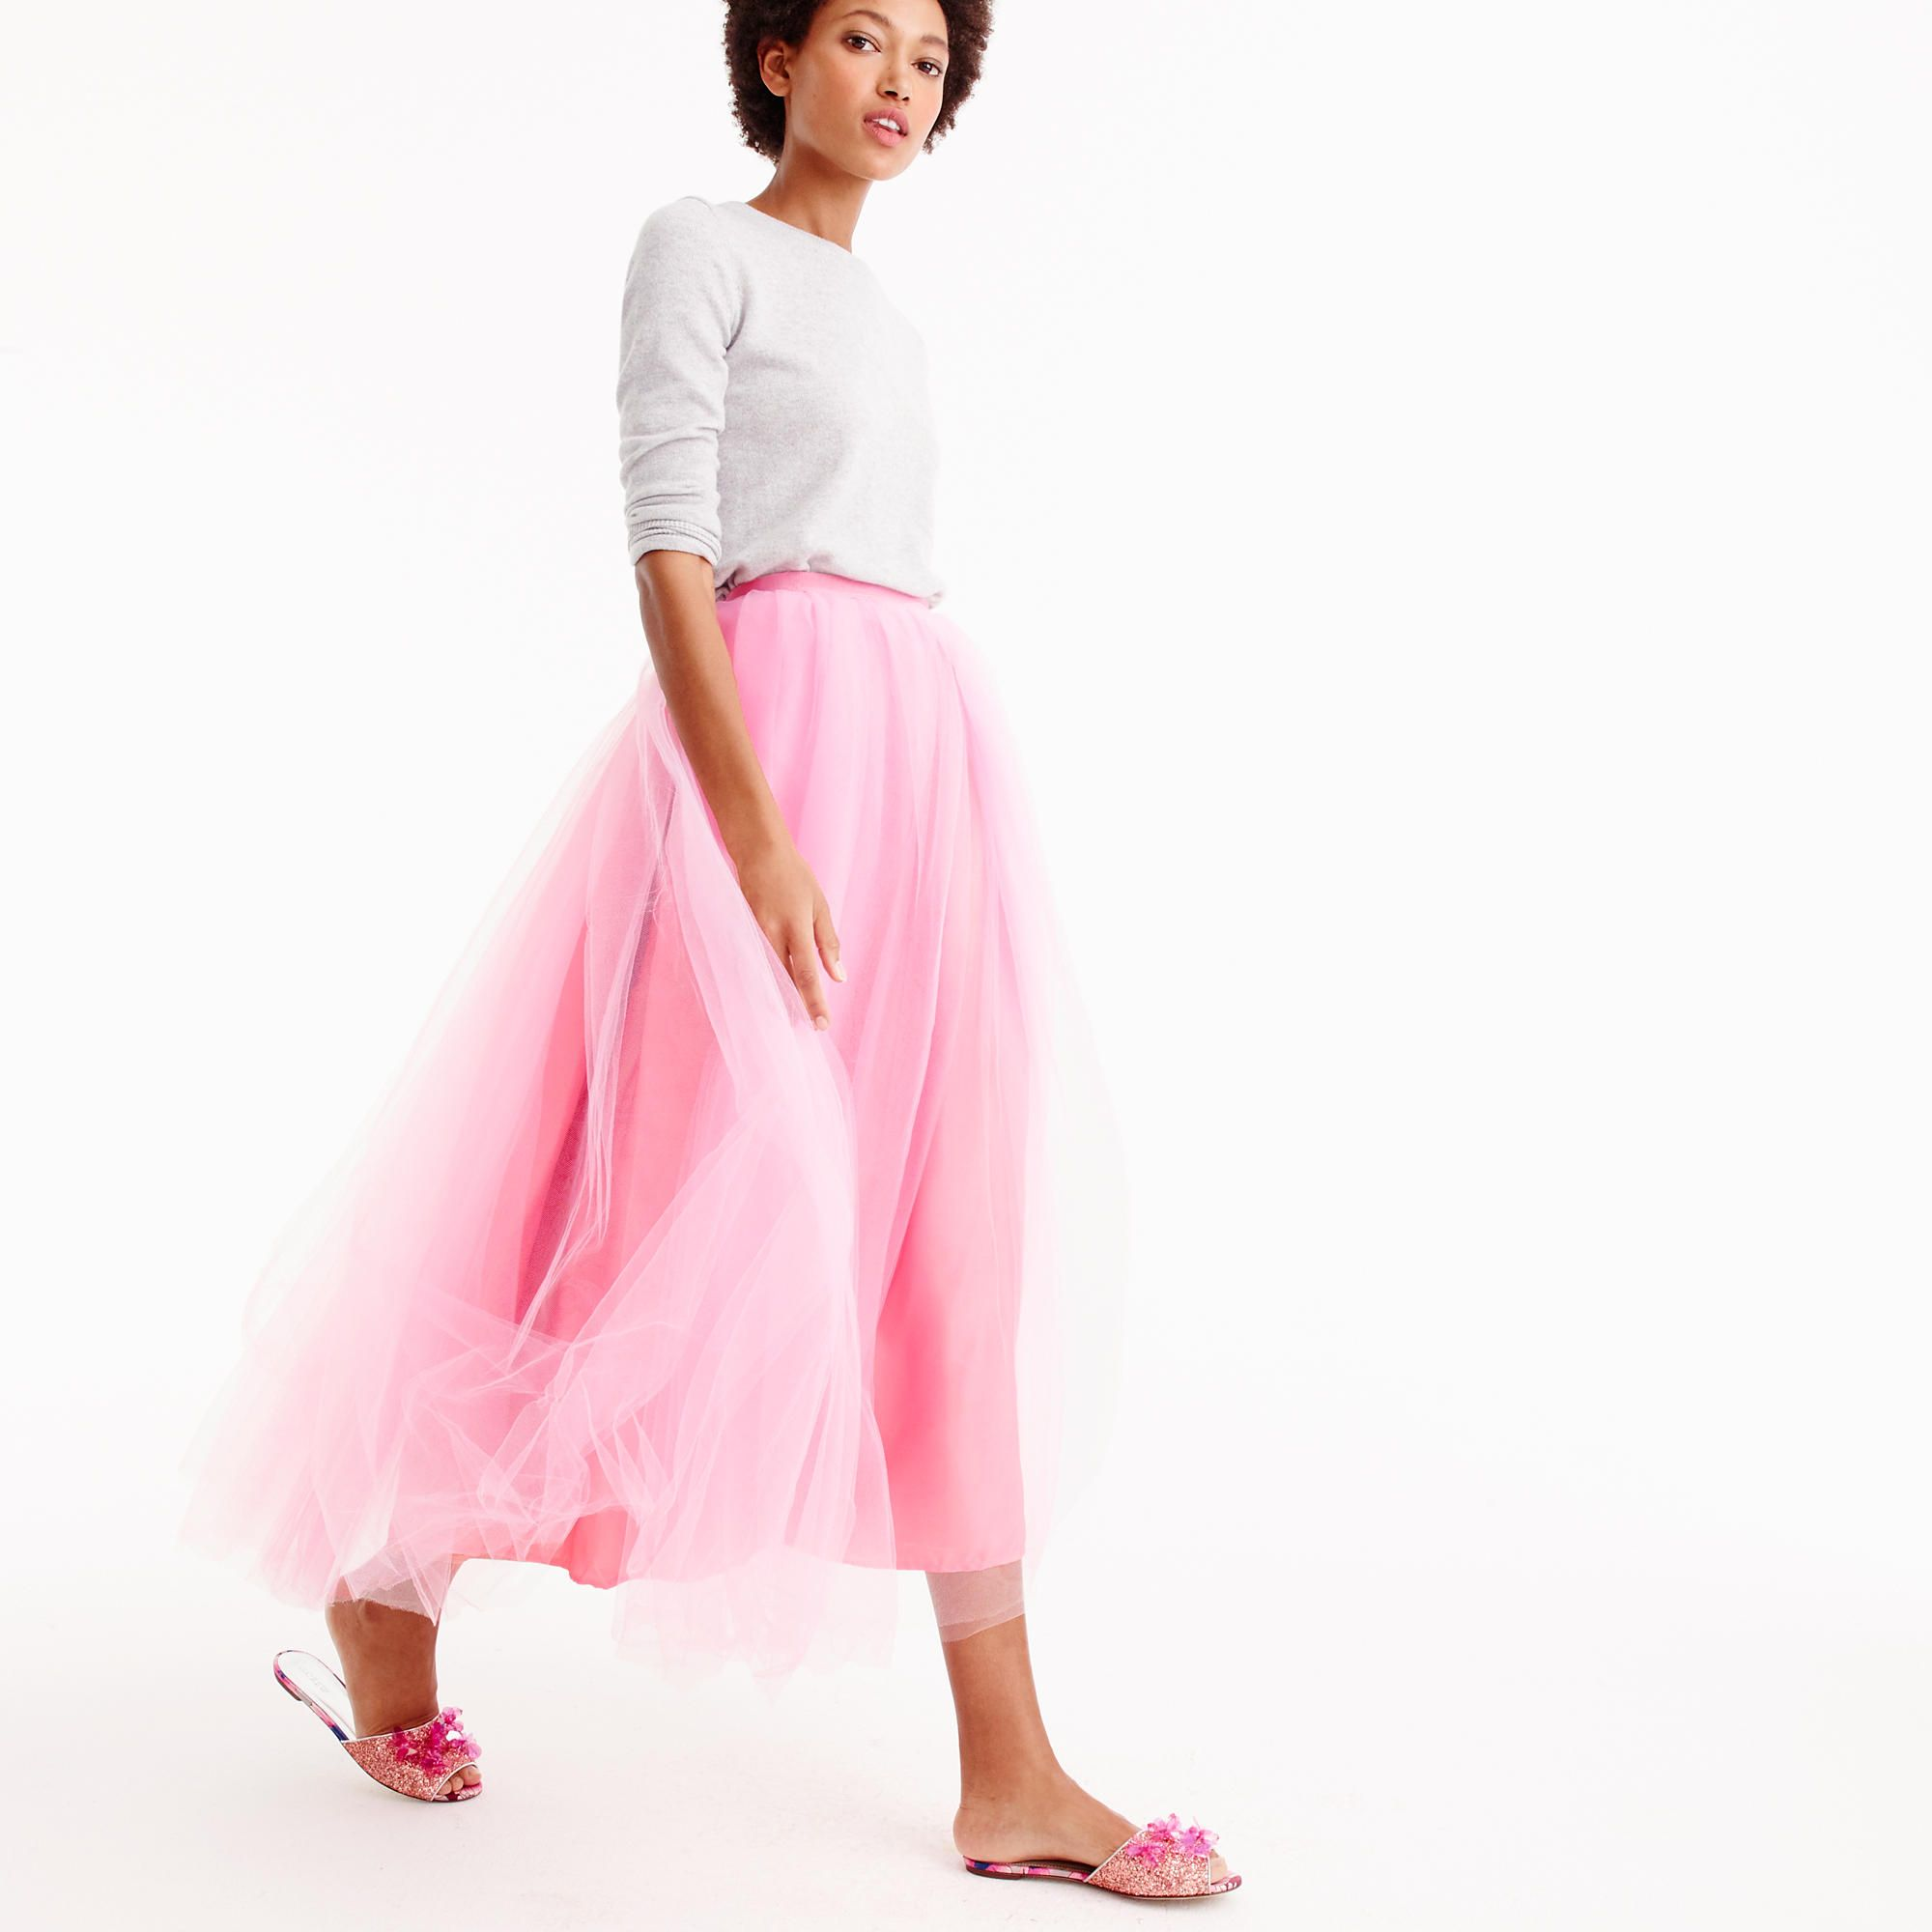 df95f8a6b1 Tulle ball skirt | Clothes | Ball skirt, Skirt outfits, Tulle